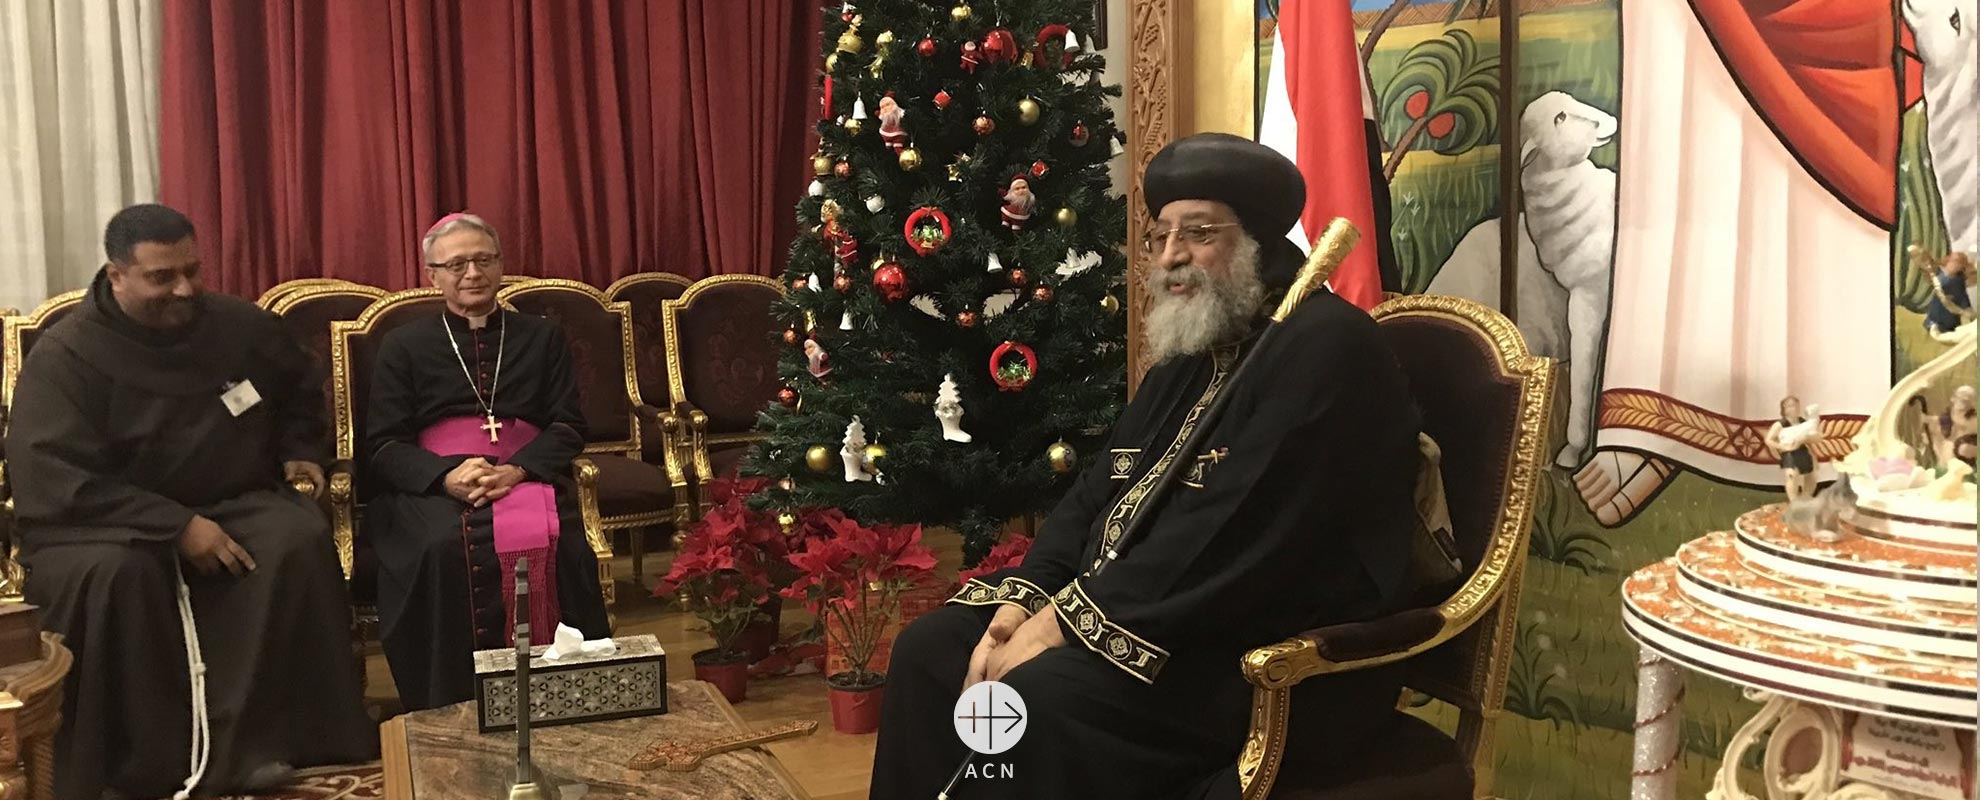 ACN delegation visits Egypt in solidarity with victims of islamic fundamentalism – meeting with Pope Tawadros II